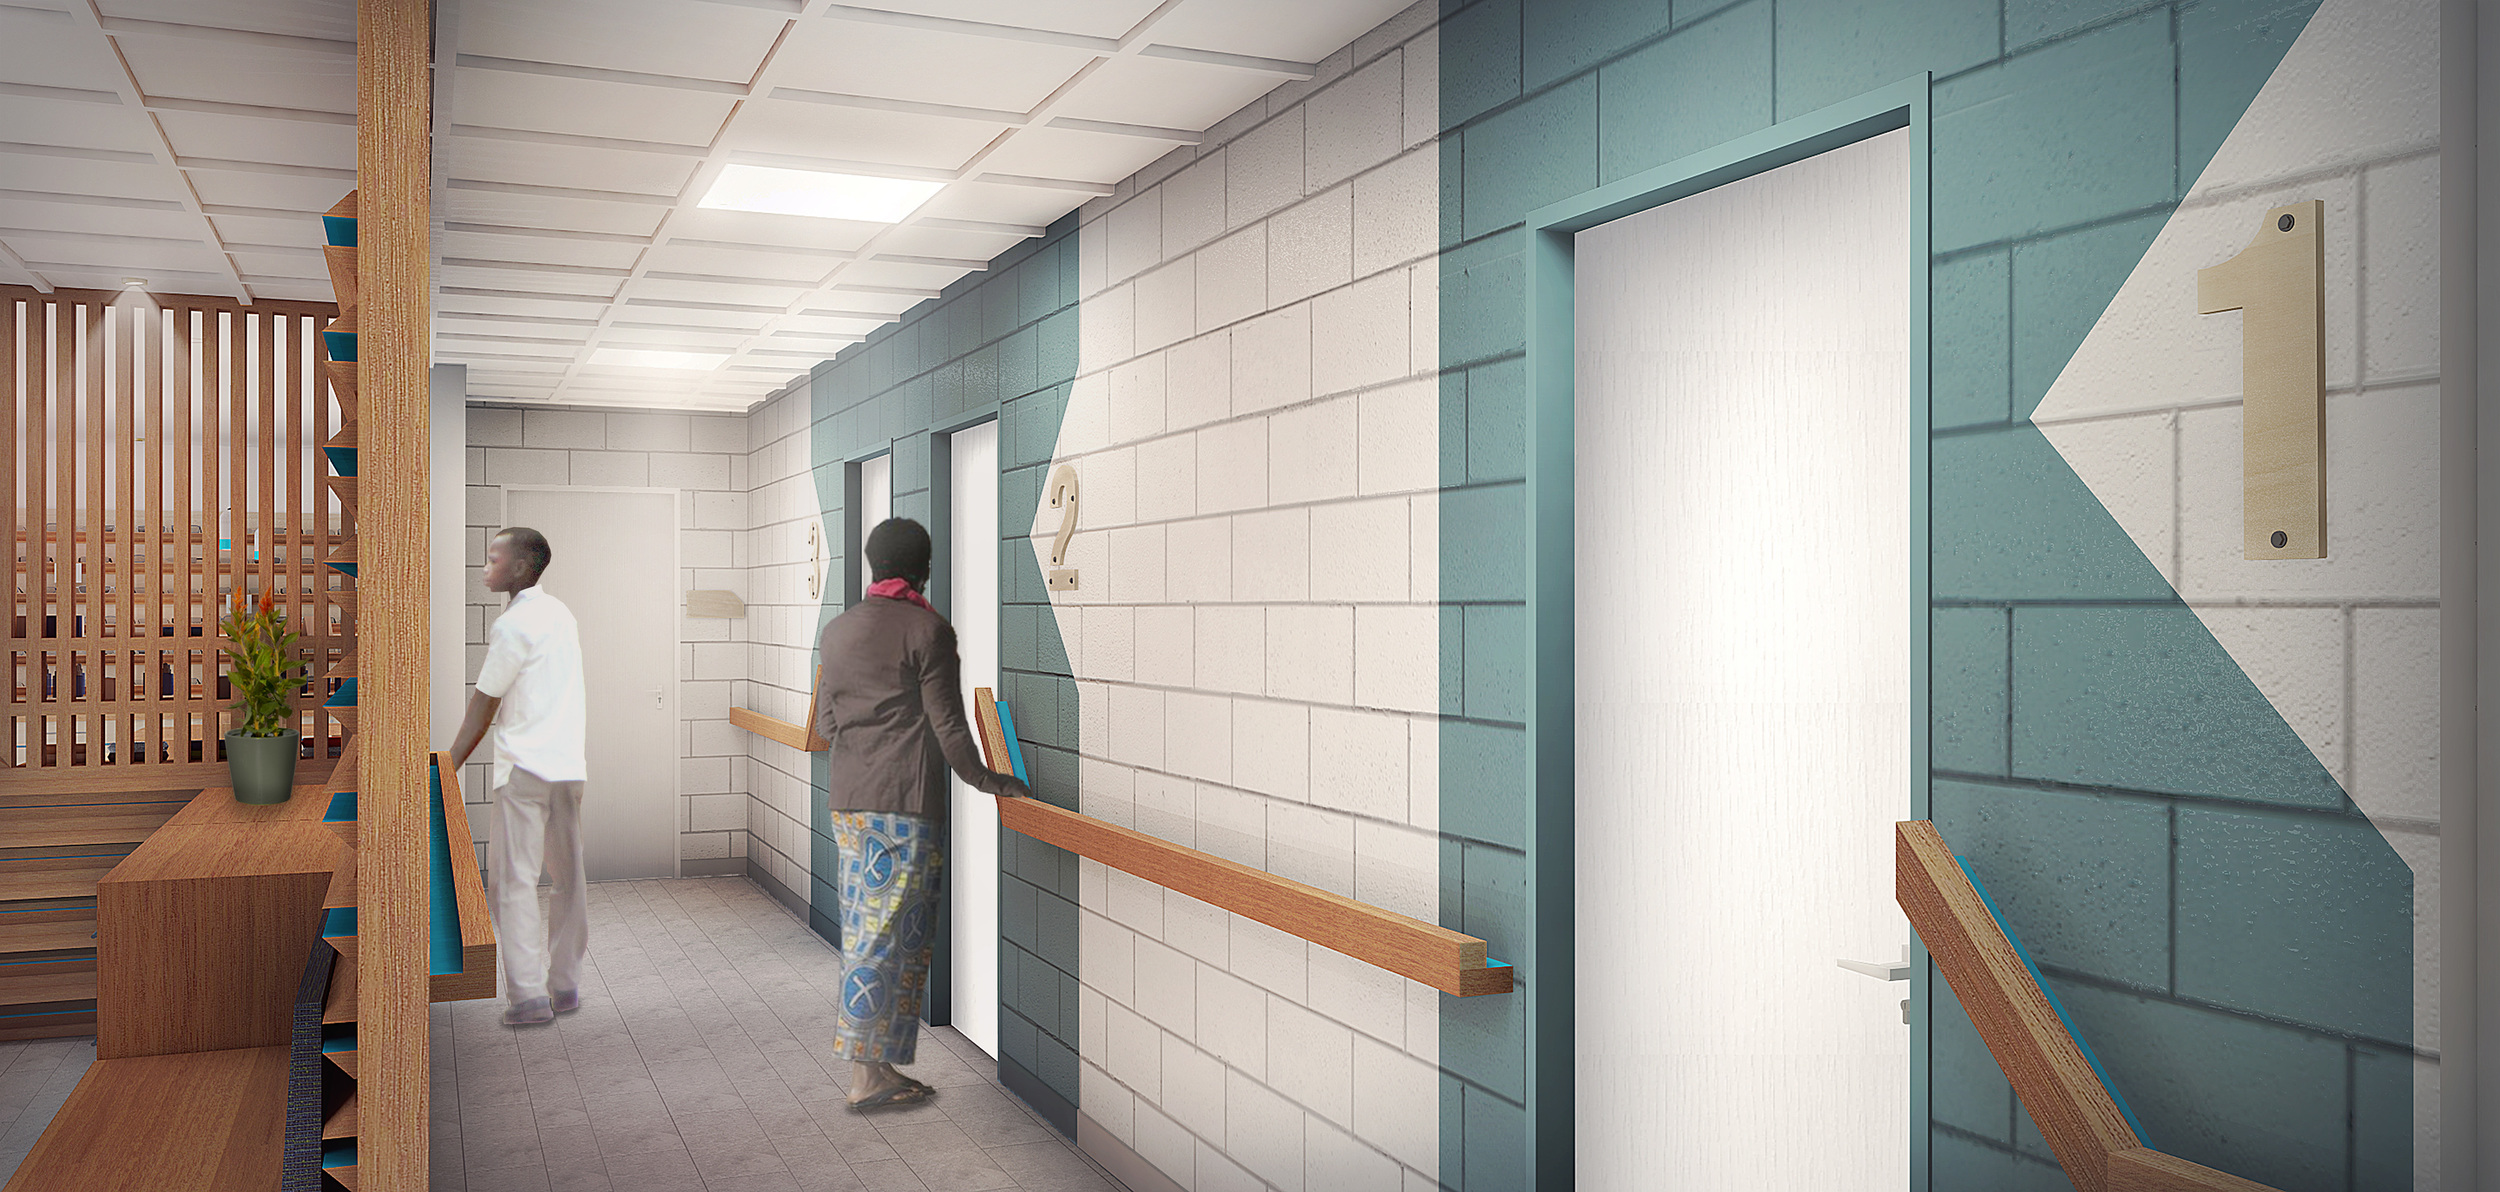 Hallway showing Exam rooms, graphics and signage as well as the handrail.